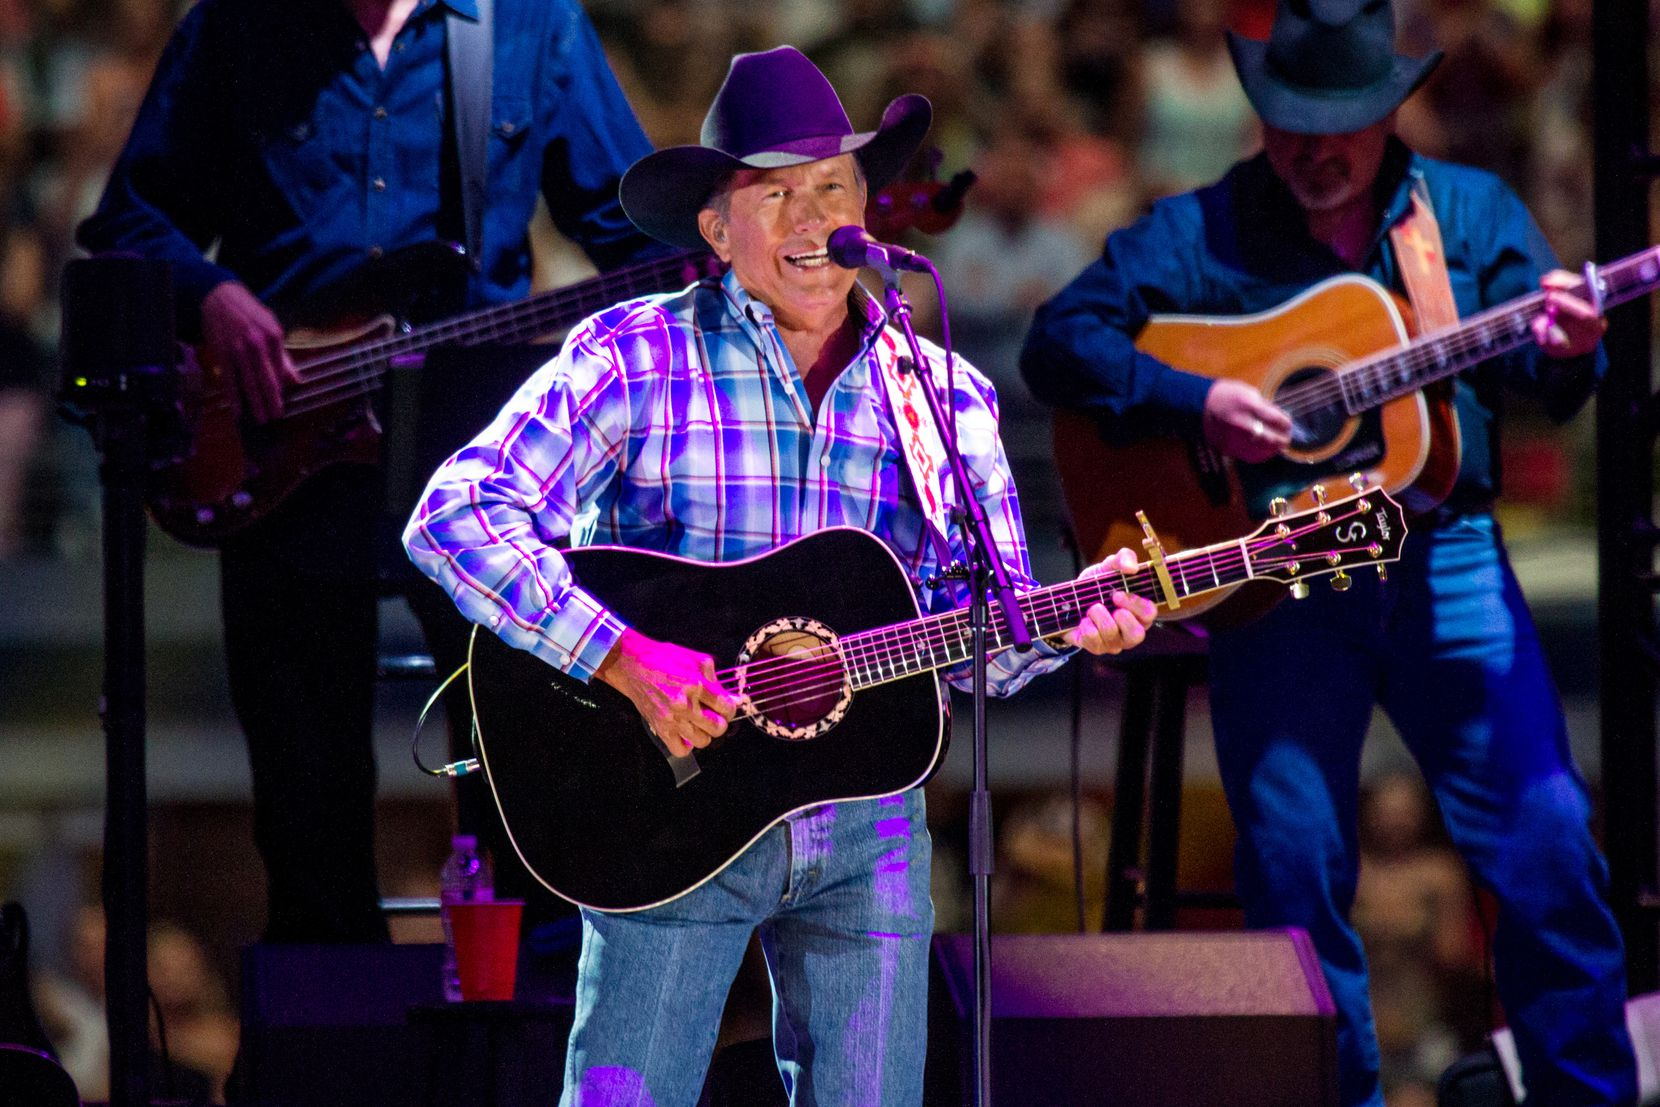 George Strait performs during his what was billed as a farewell tour at AT&T Stadium in Arlington, Texas, Saturday, June 7, 2014.